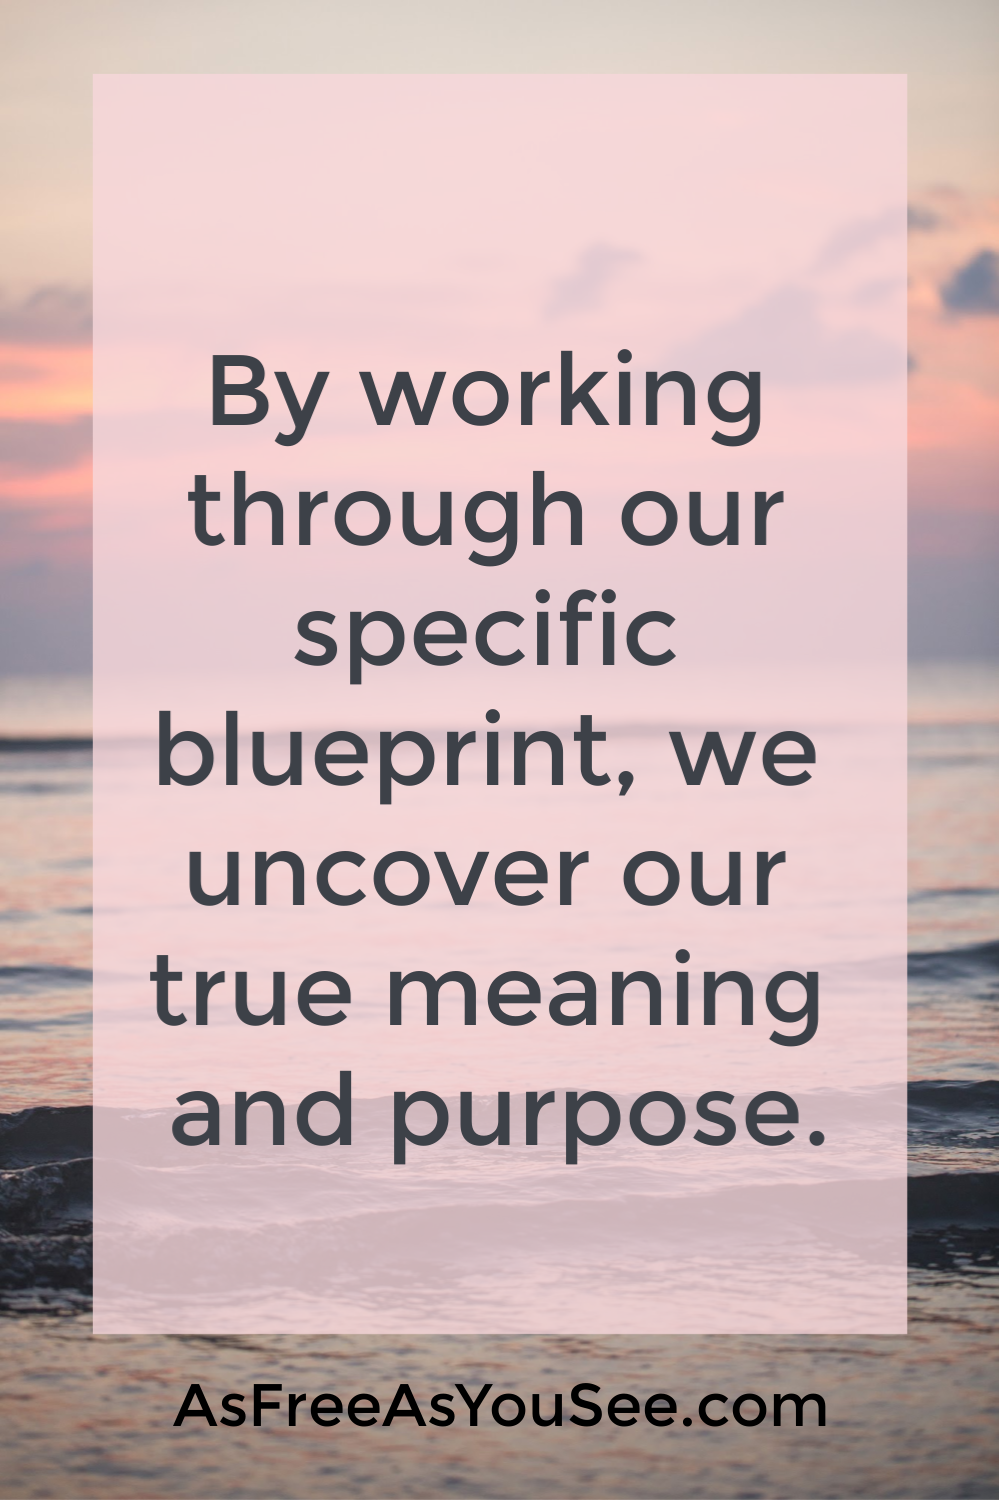 In this self-discovery blog, you'll get 3 tips on why gene keys are the ultimate blueprint to the self-discovery journey.  This blog provides insights on how the gene keys chart helps you with figuring yourself out, reinventing yourself, and knowing who you really to the core.  Dive deep with this blog and begin your self-discovery journey today!